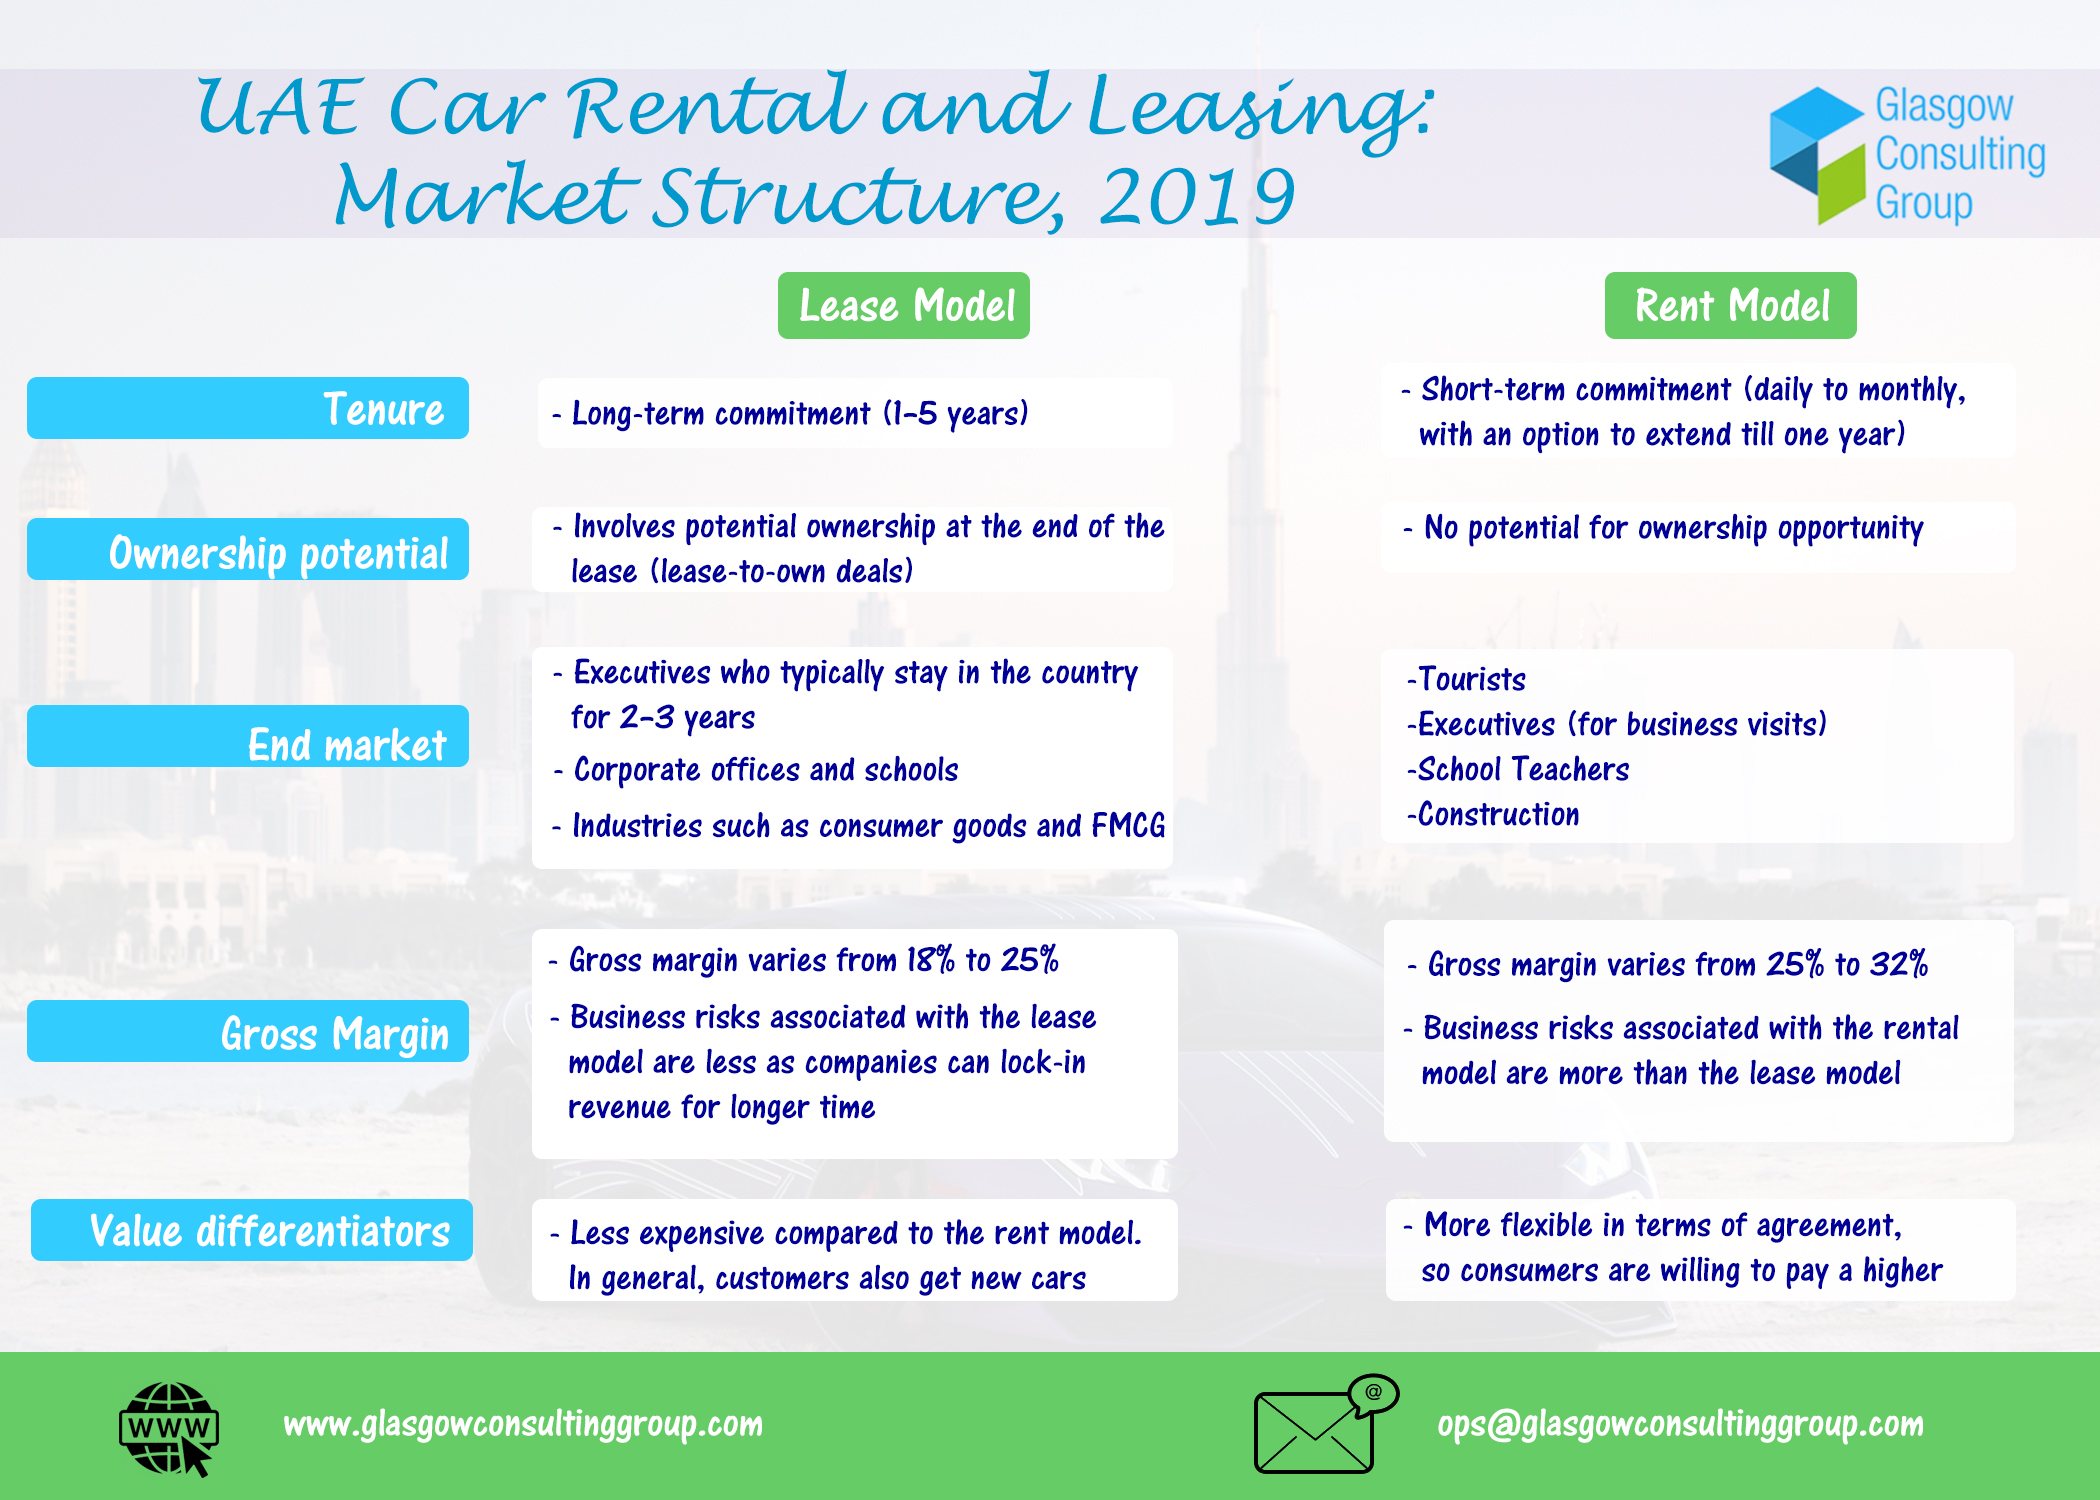 UAE Car Rental and Leasing Market Structure 2019